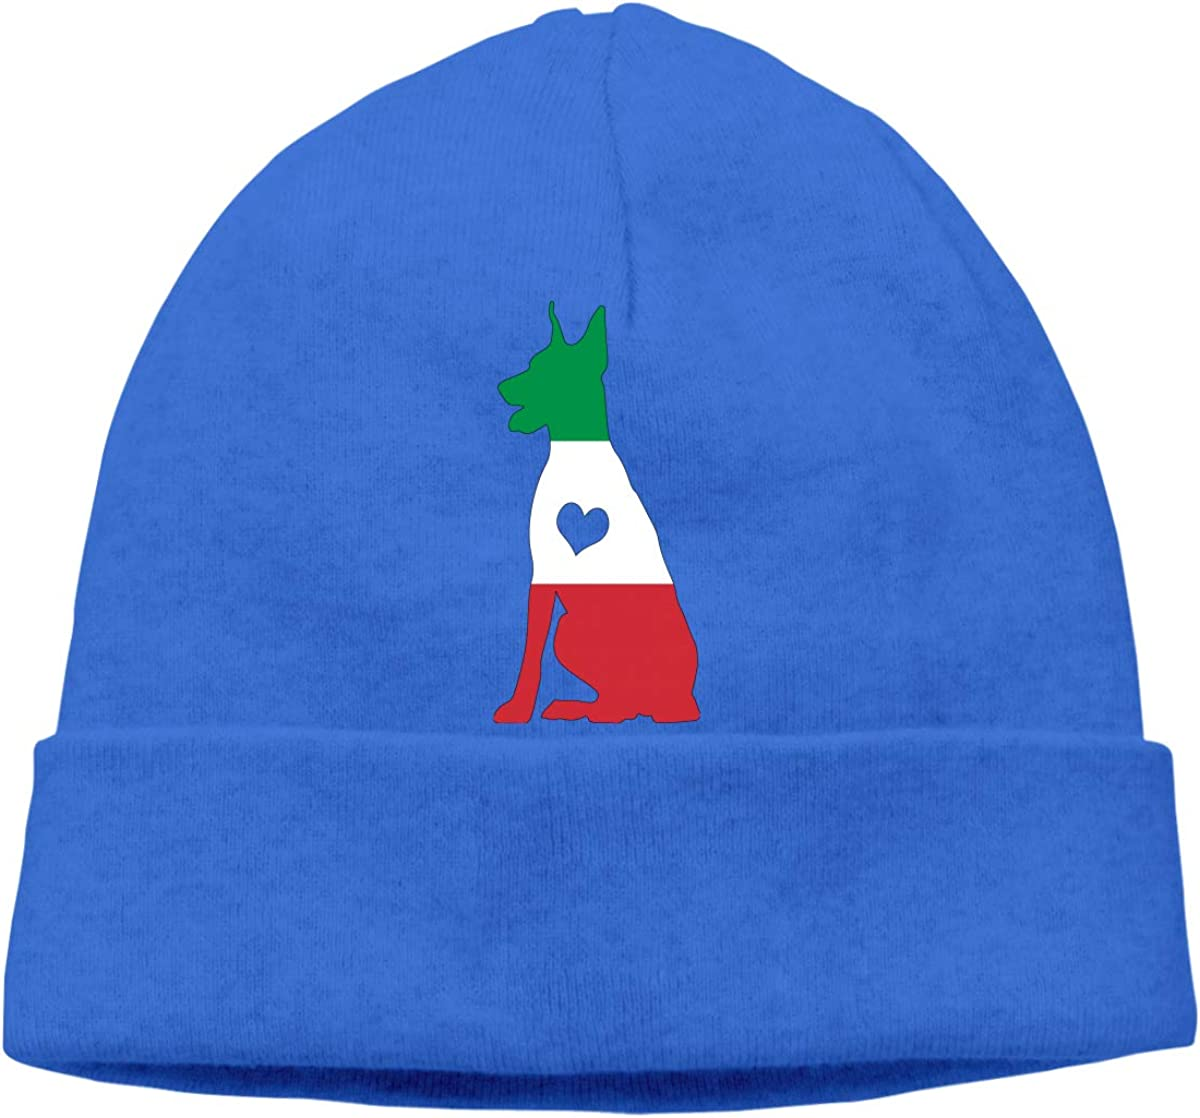 BF5Y3z/&MA Italian Flag Adore Dobermans Dog Beanie Hat for Men Women,Stretch Knitted Hat Skiing Cap